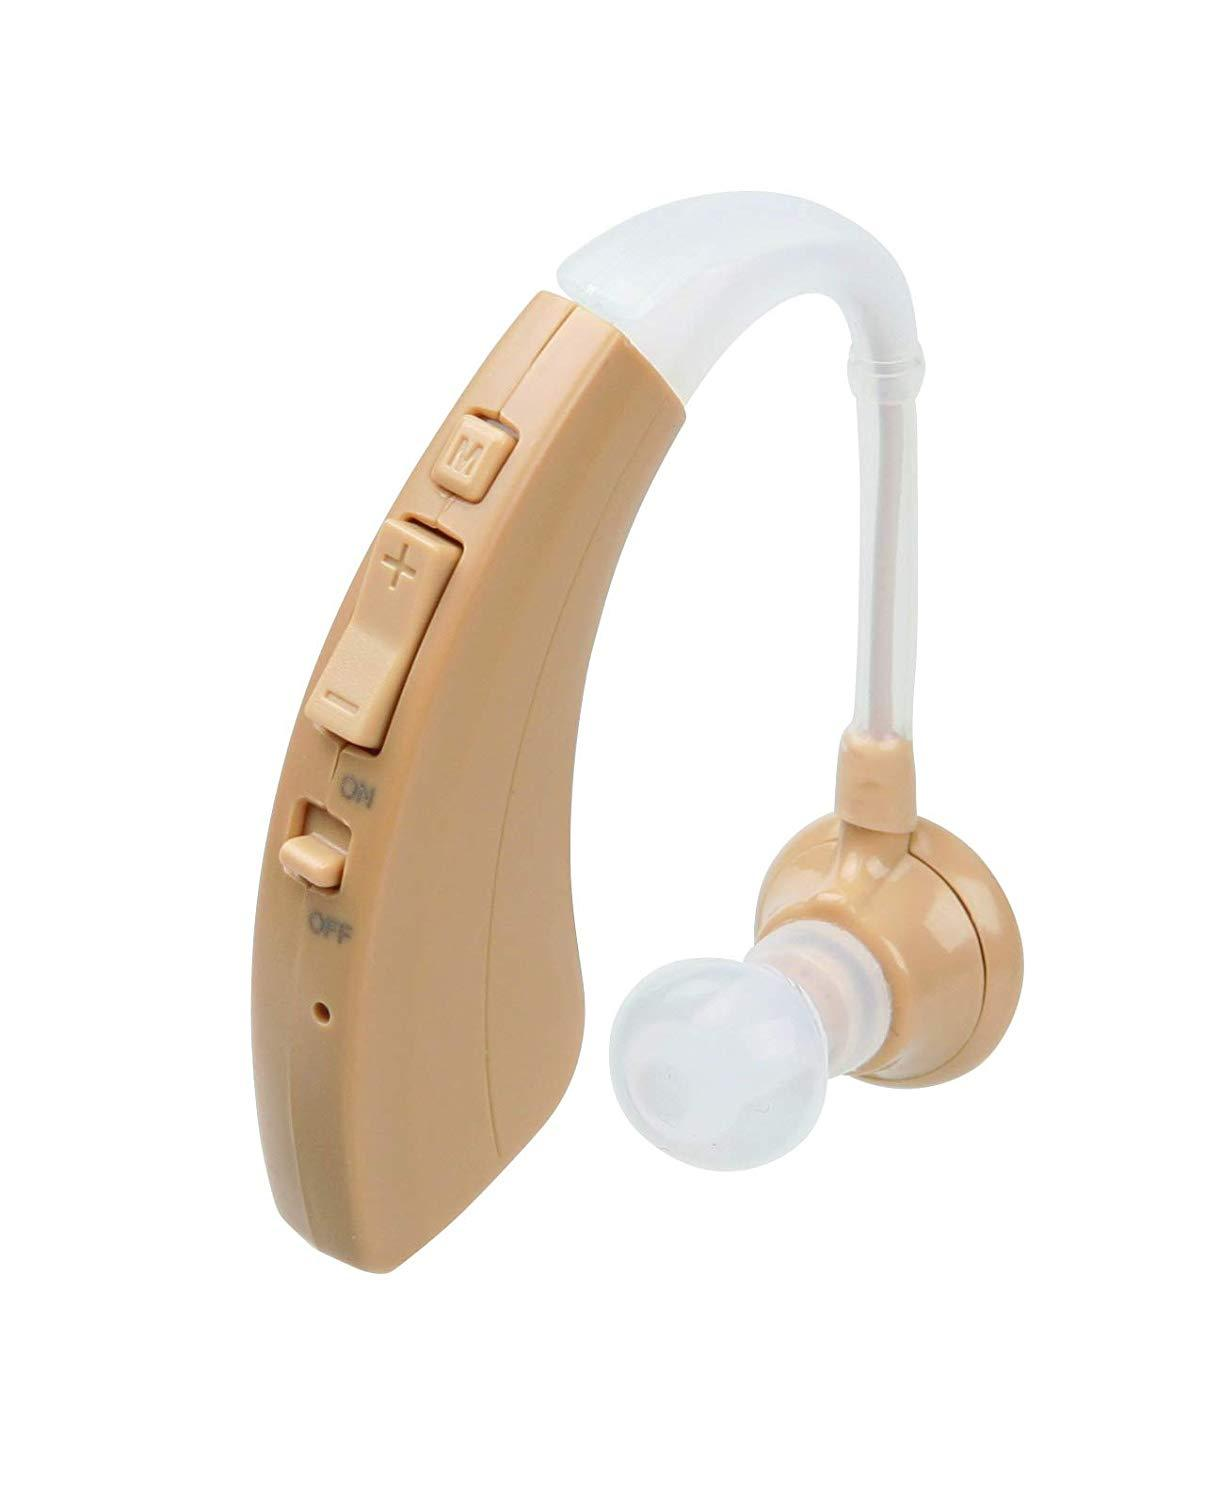 Amplificador Ear With Technology Hearing Aid BTE Very Discreet